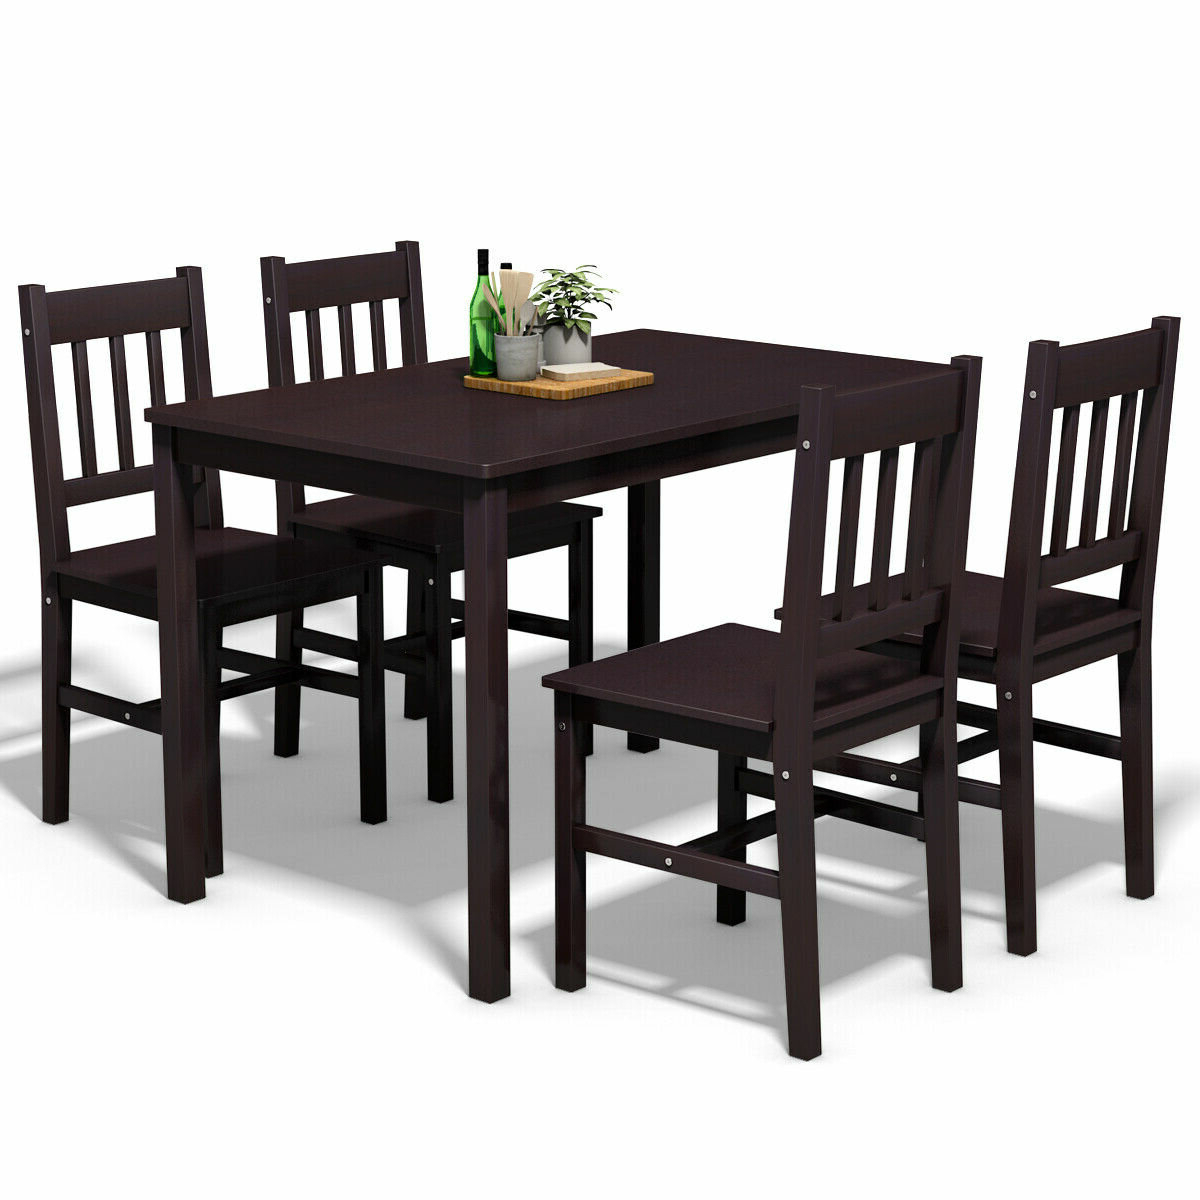 Yedinak 5 Piece Solid Wood Dining Sets With Regard To Most Current Sundberg 5 Piece Solid Wood Dining Set (View 19 of 20)